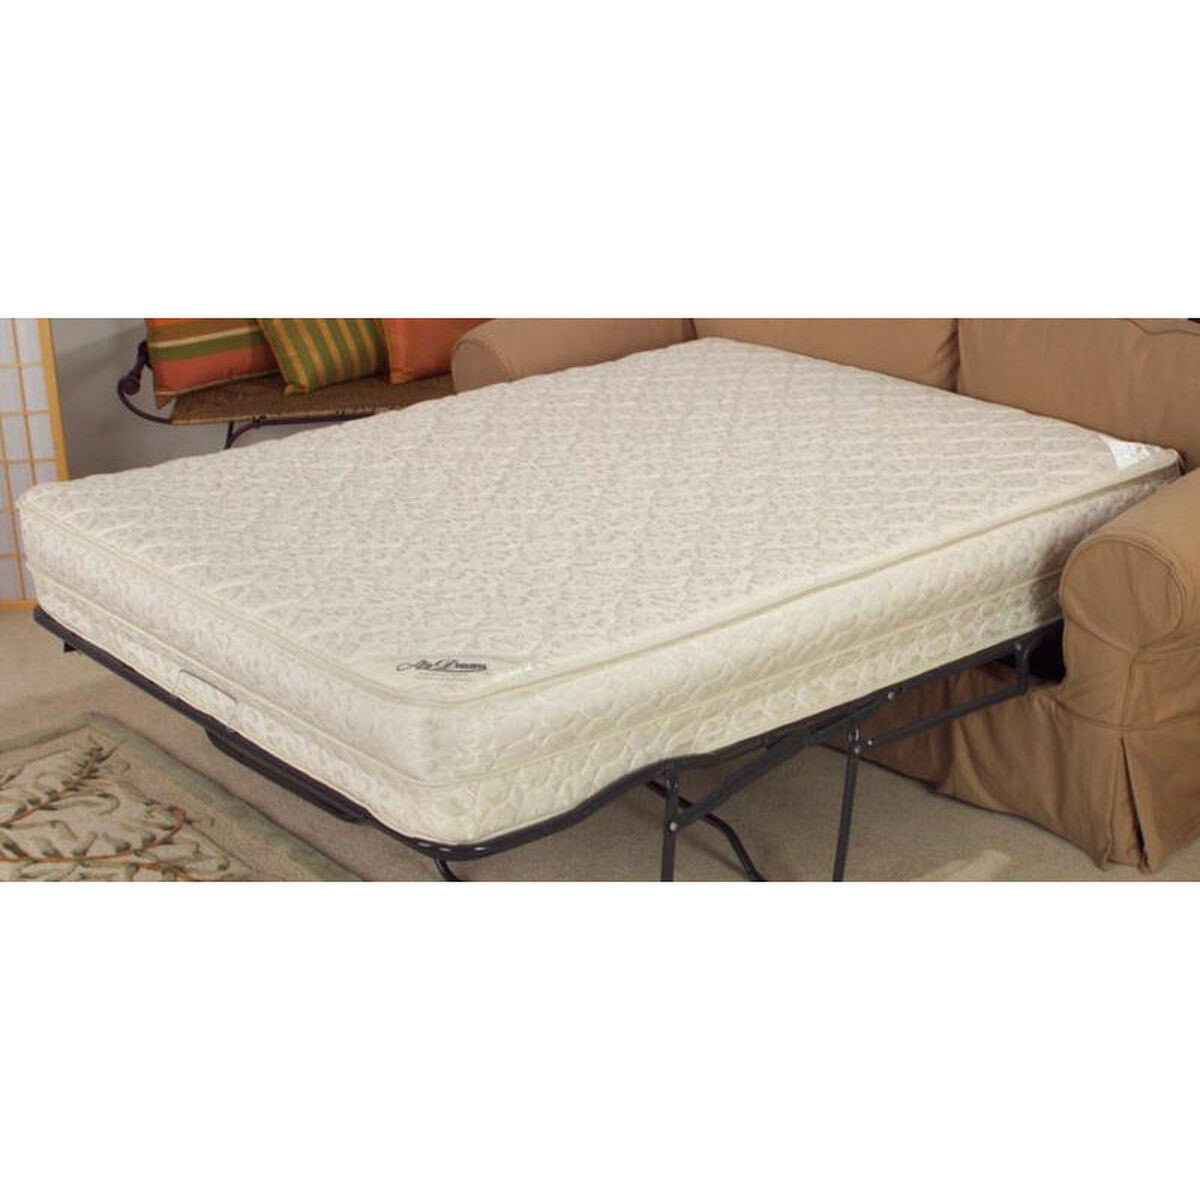 Our Airdream 11 H Sleeper Sofa Bed Mattress Full Is On Now